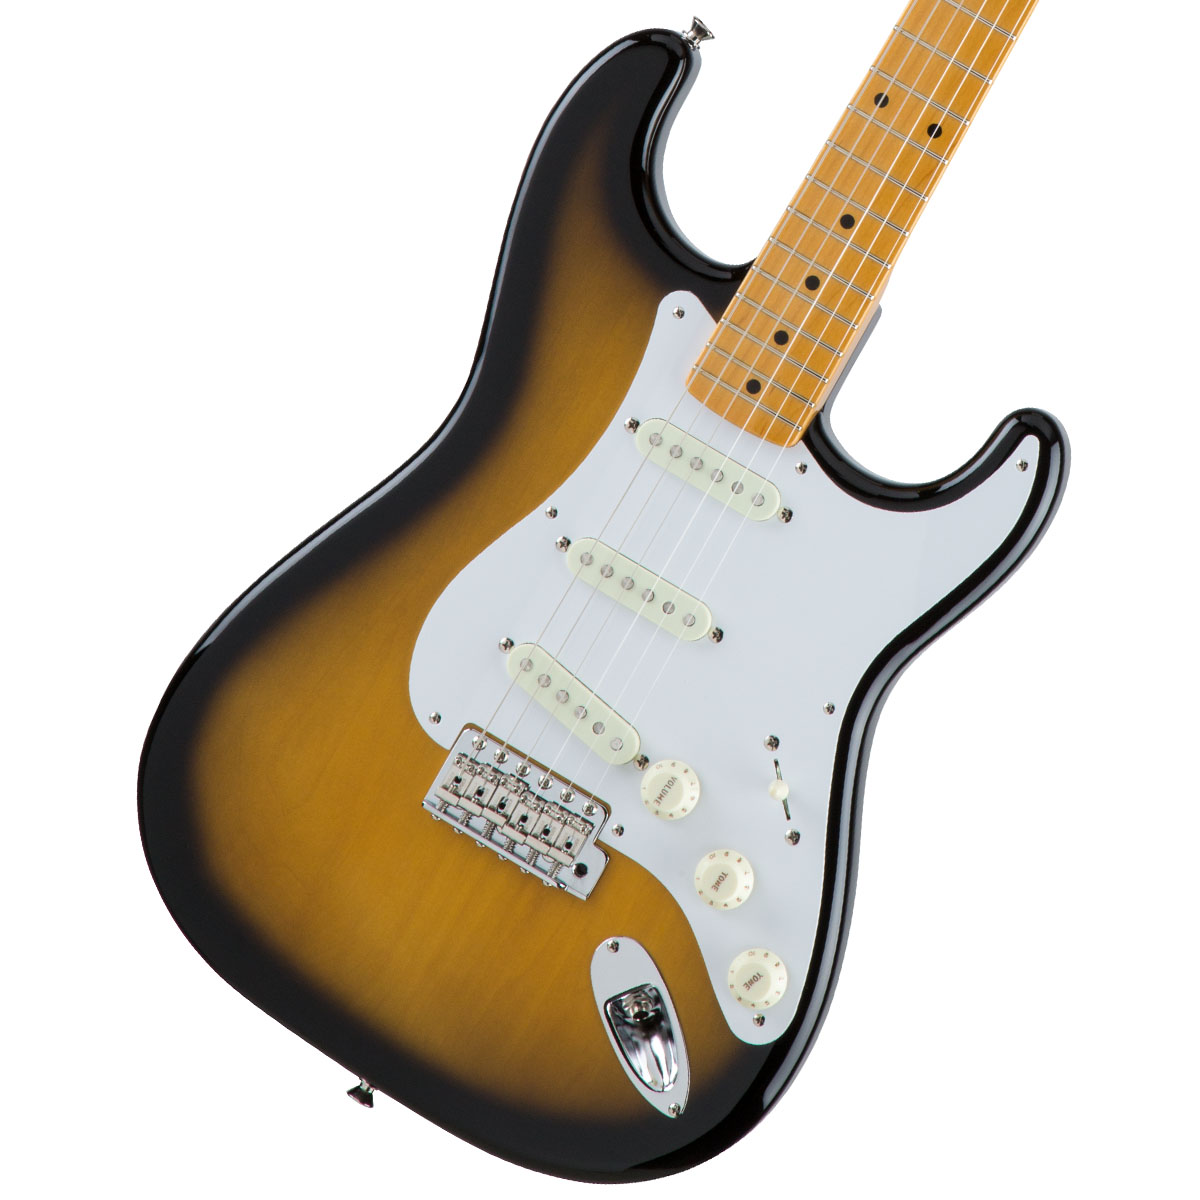 Fender / Made in Japan Traditional 50s Stratocaster Maple Fingerboard 2-Color Sunburst 【お取り寄せ商品】《カスタムショップのお手入れ用品を進呈/+671038200》